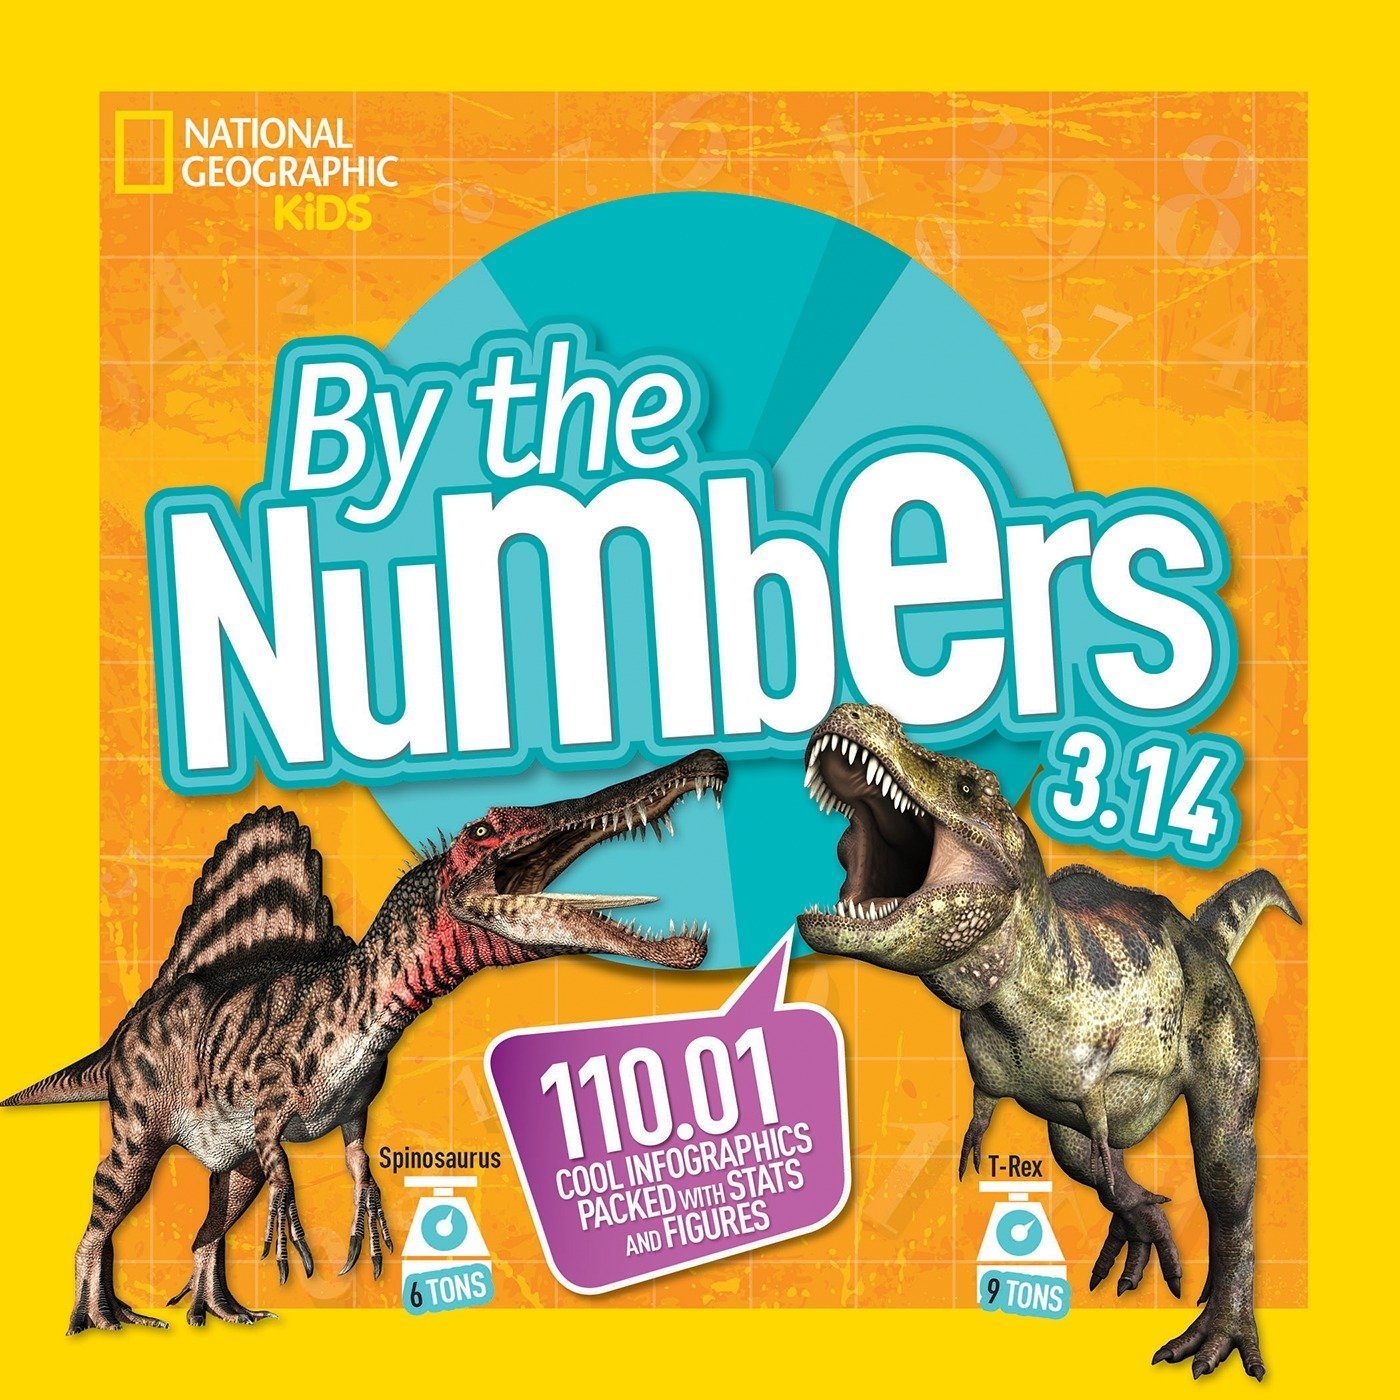 Download By the Numbers 3.14: 110.01 Cool Infographics Packed With Stats and Figures PDF